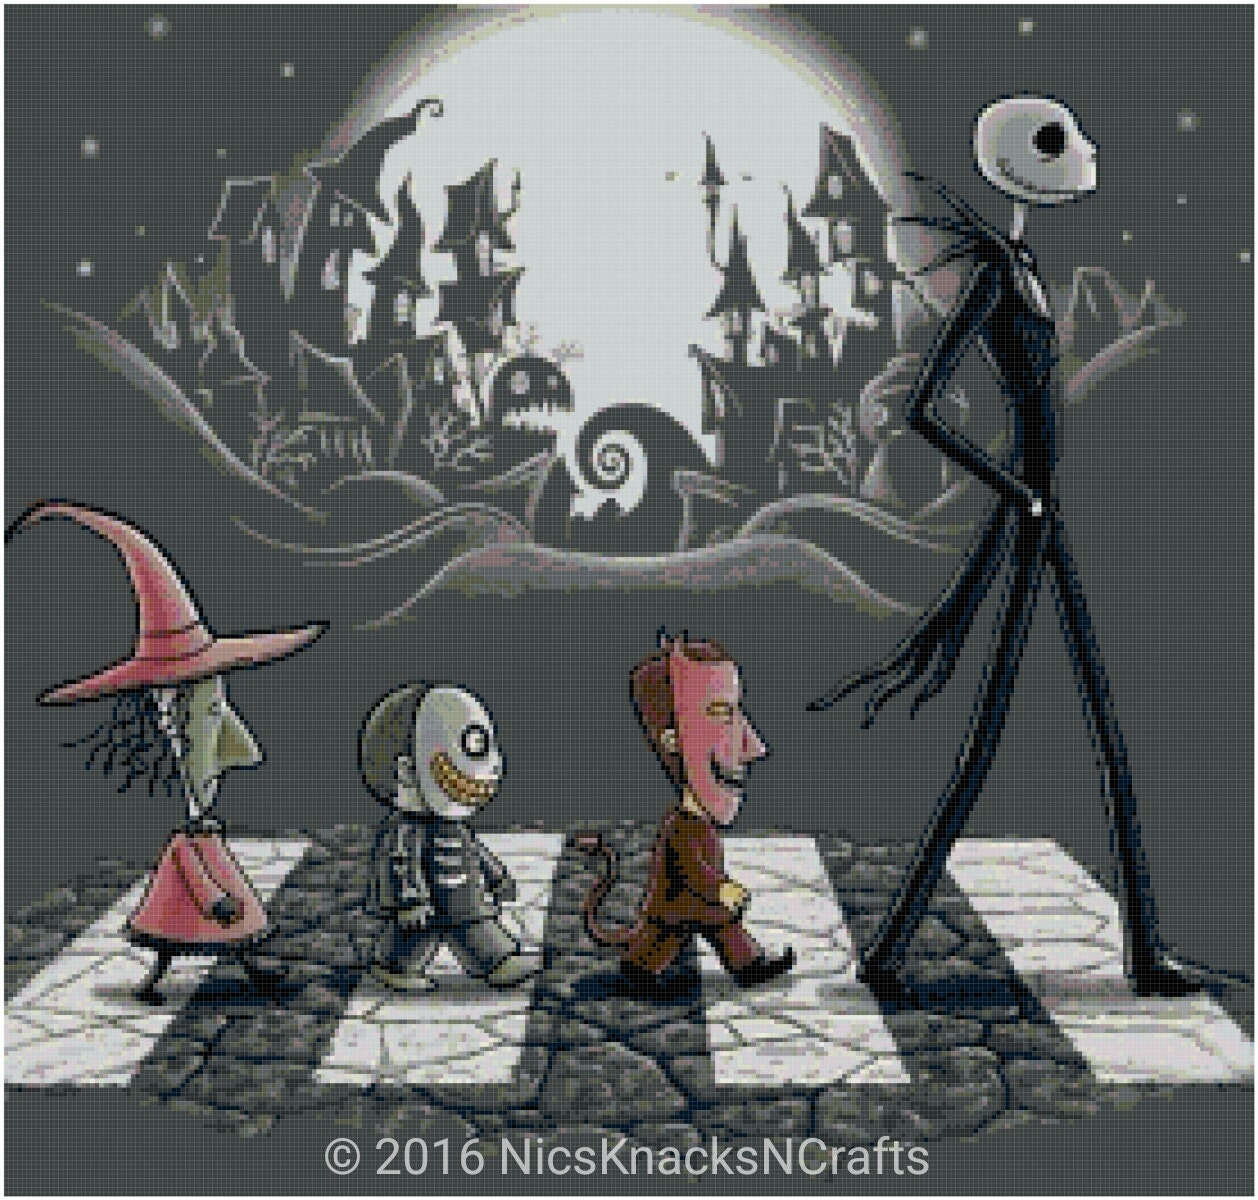 Free Comic Book Day Nightmare Before Christmas: Nightmare On Abbey Lane Cross Stitch Pattern